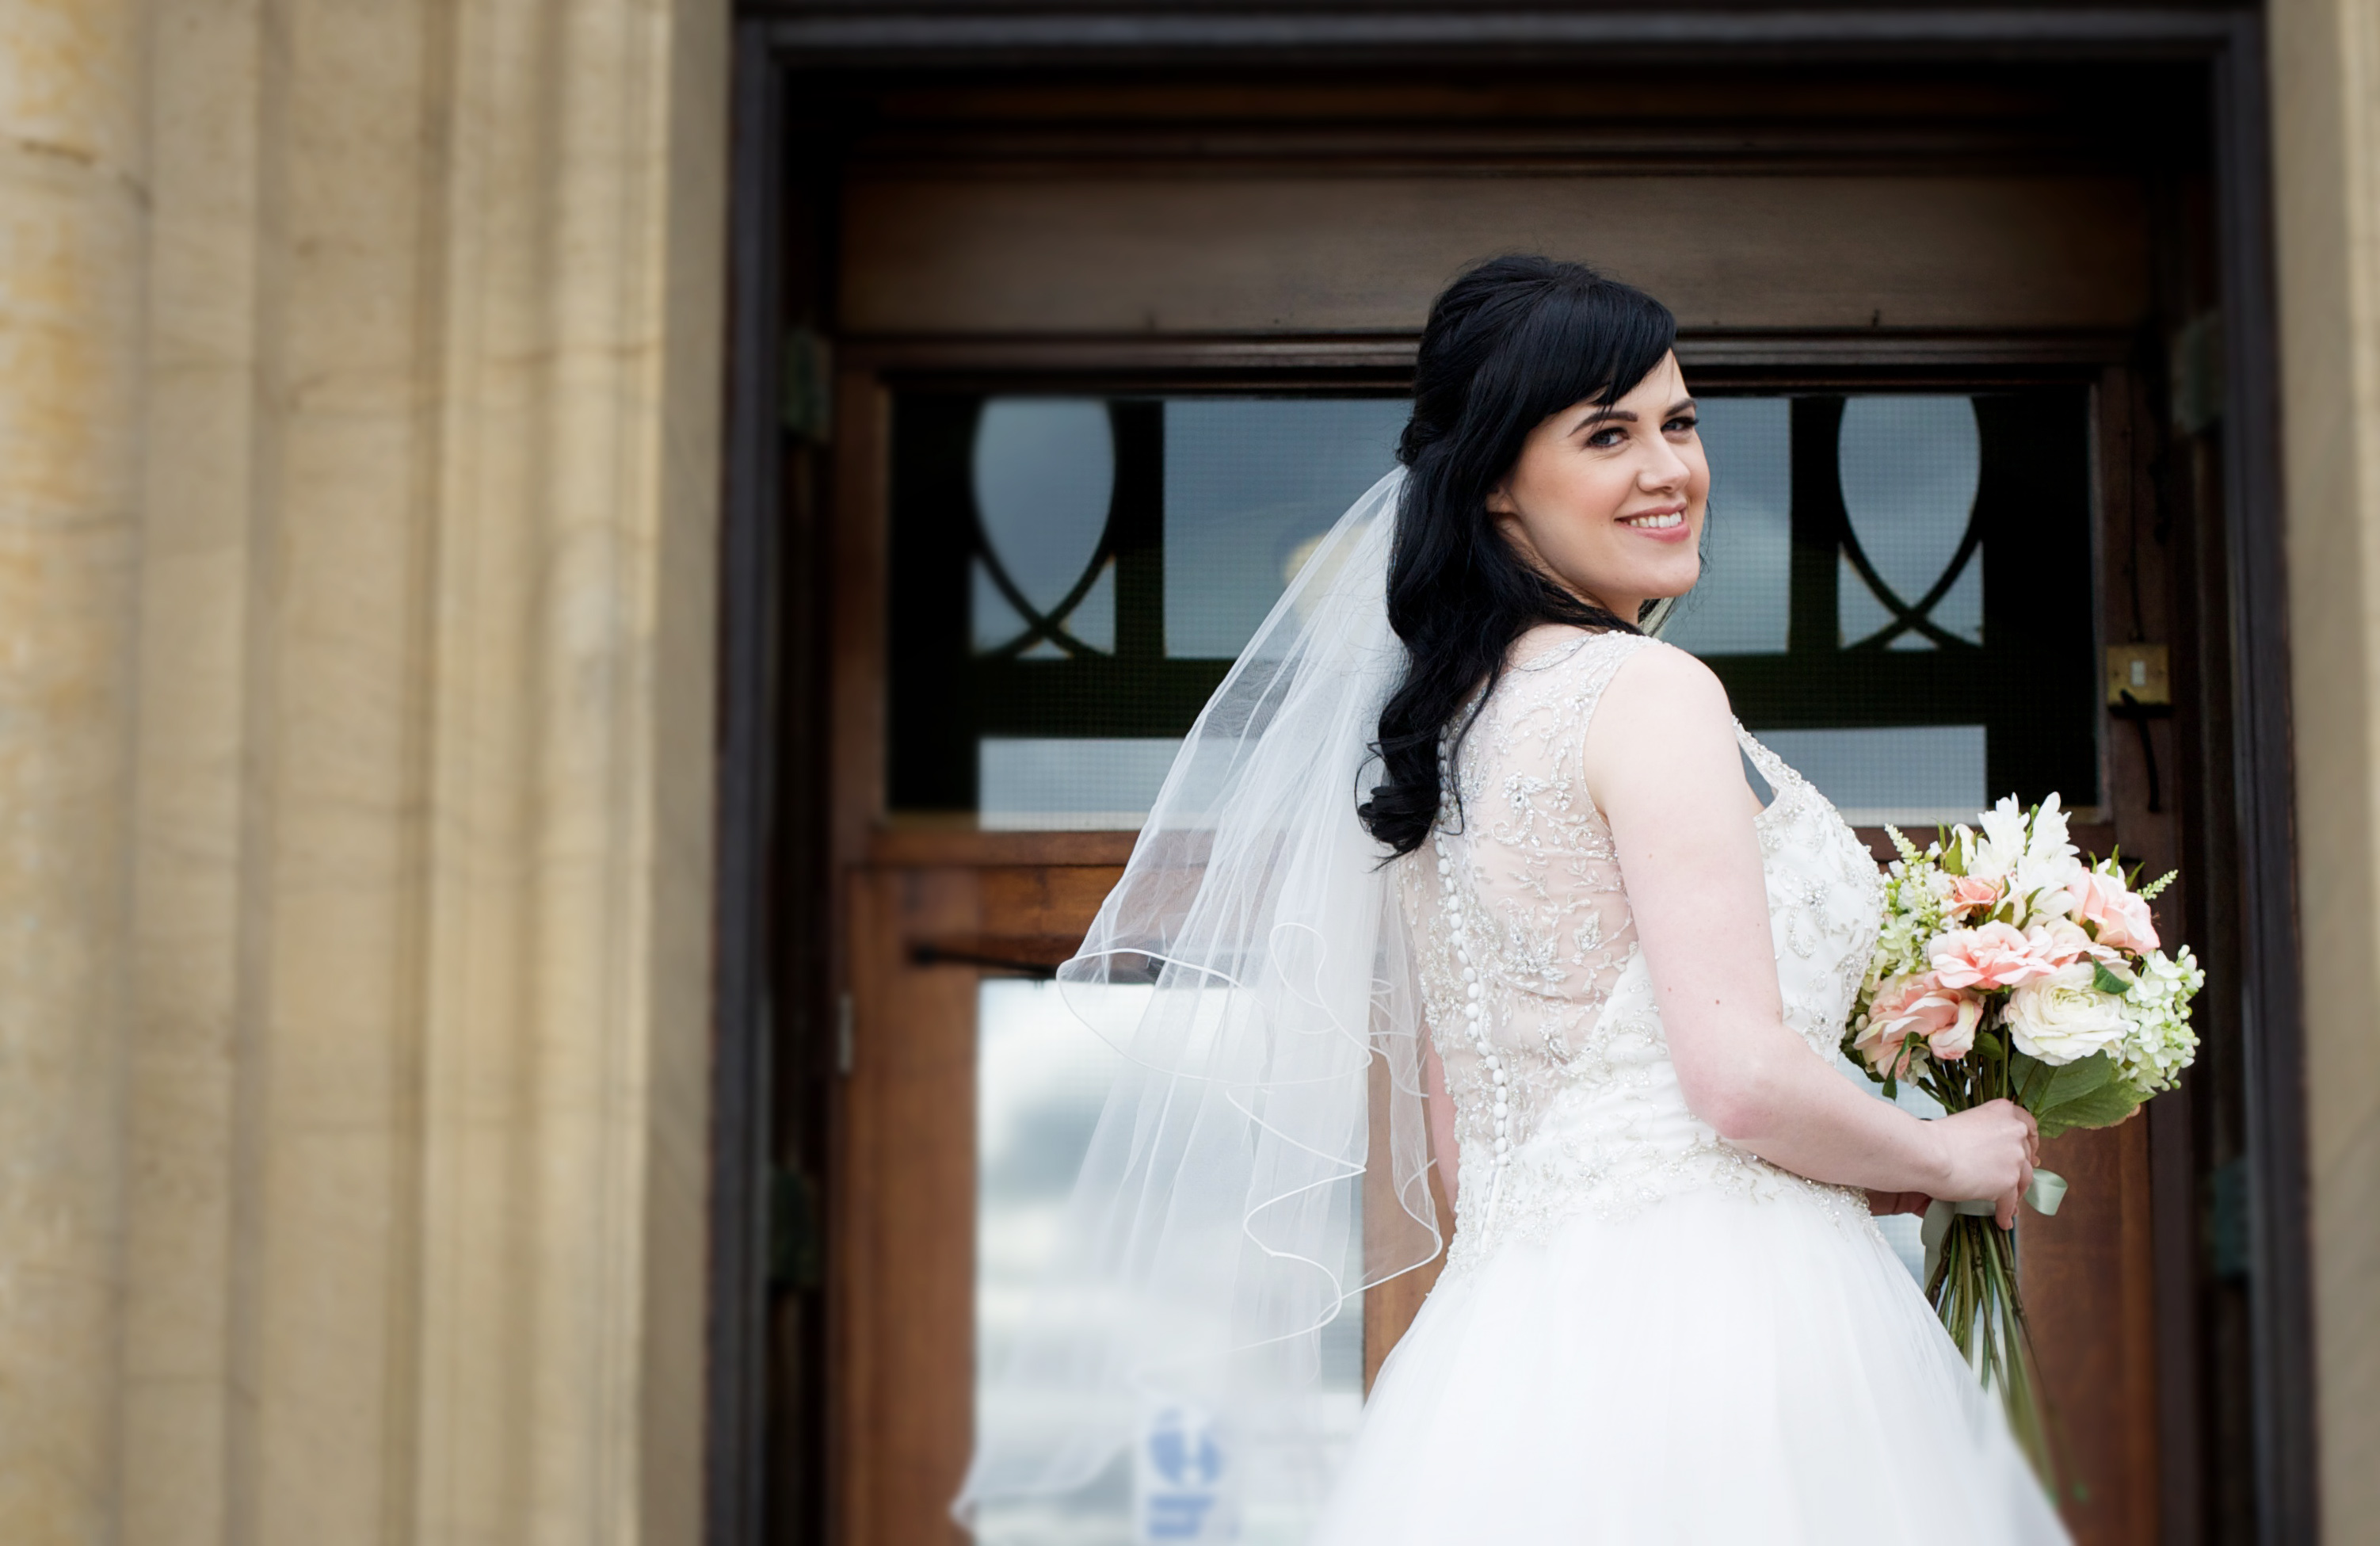 Well Met Welcomes Leeds Couples to Exciting Wedding Fair at Headingley Venue